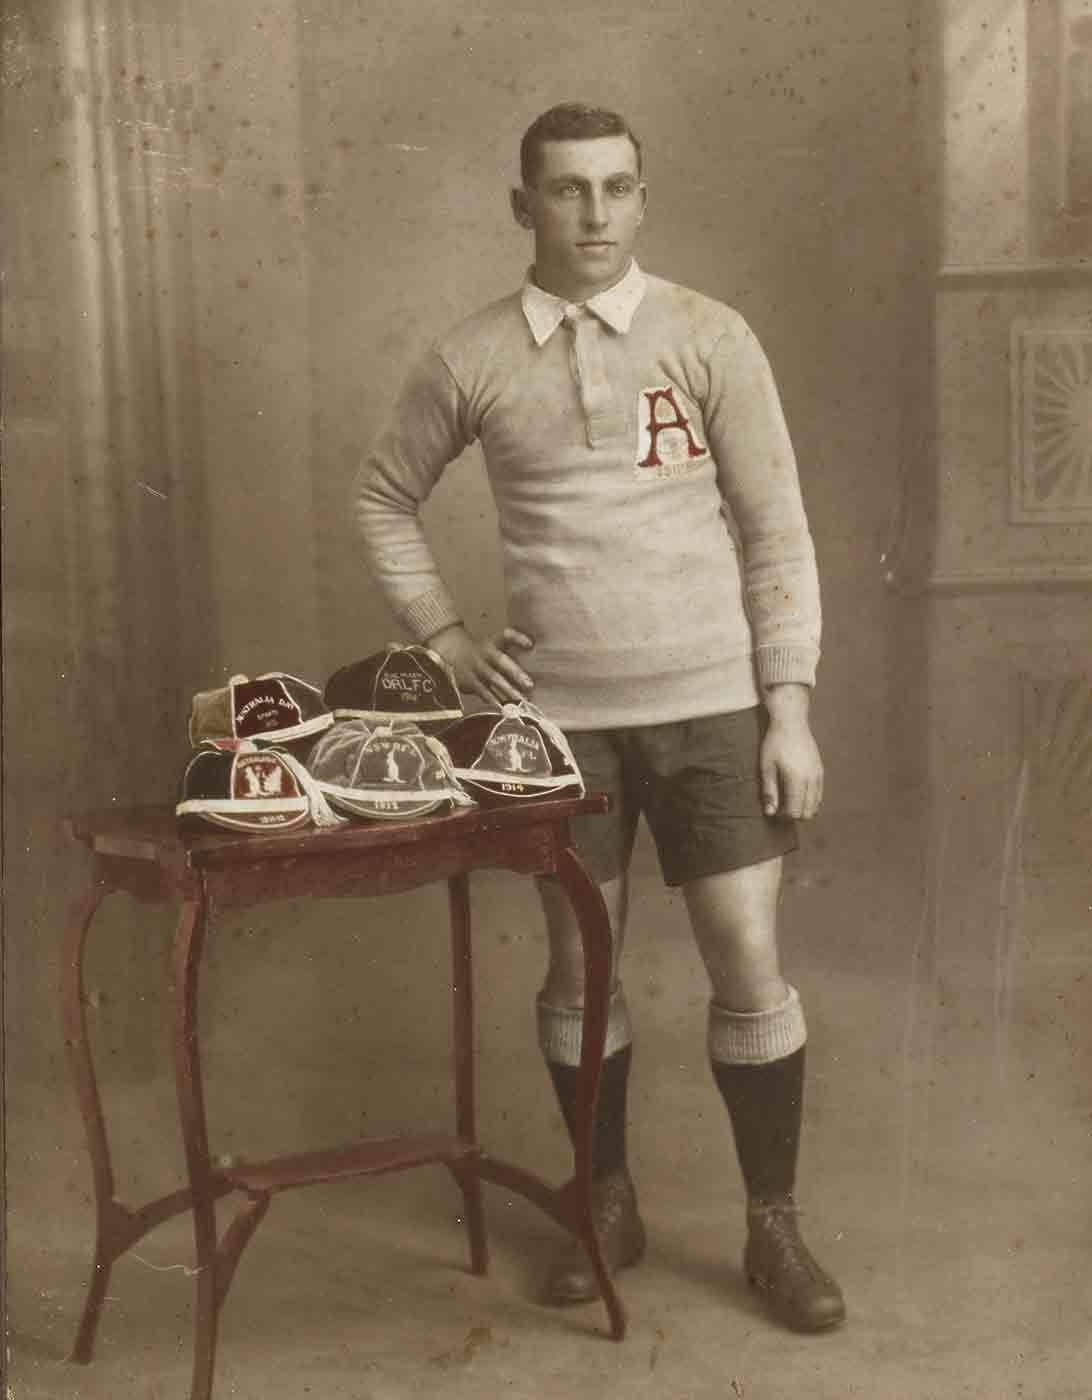 Studio photo of a man dressed in a football uniform. He stands beside a small table with various football caps on it. - click to view larger image